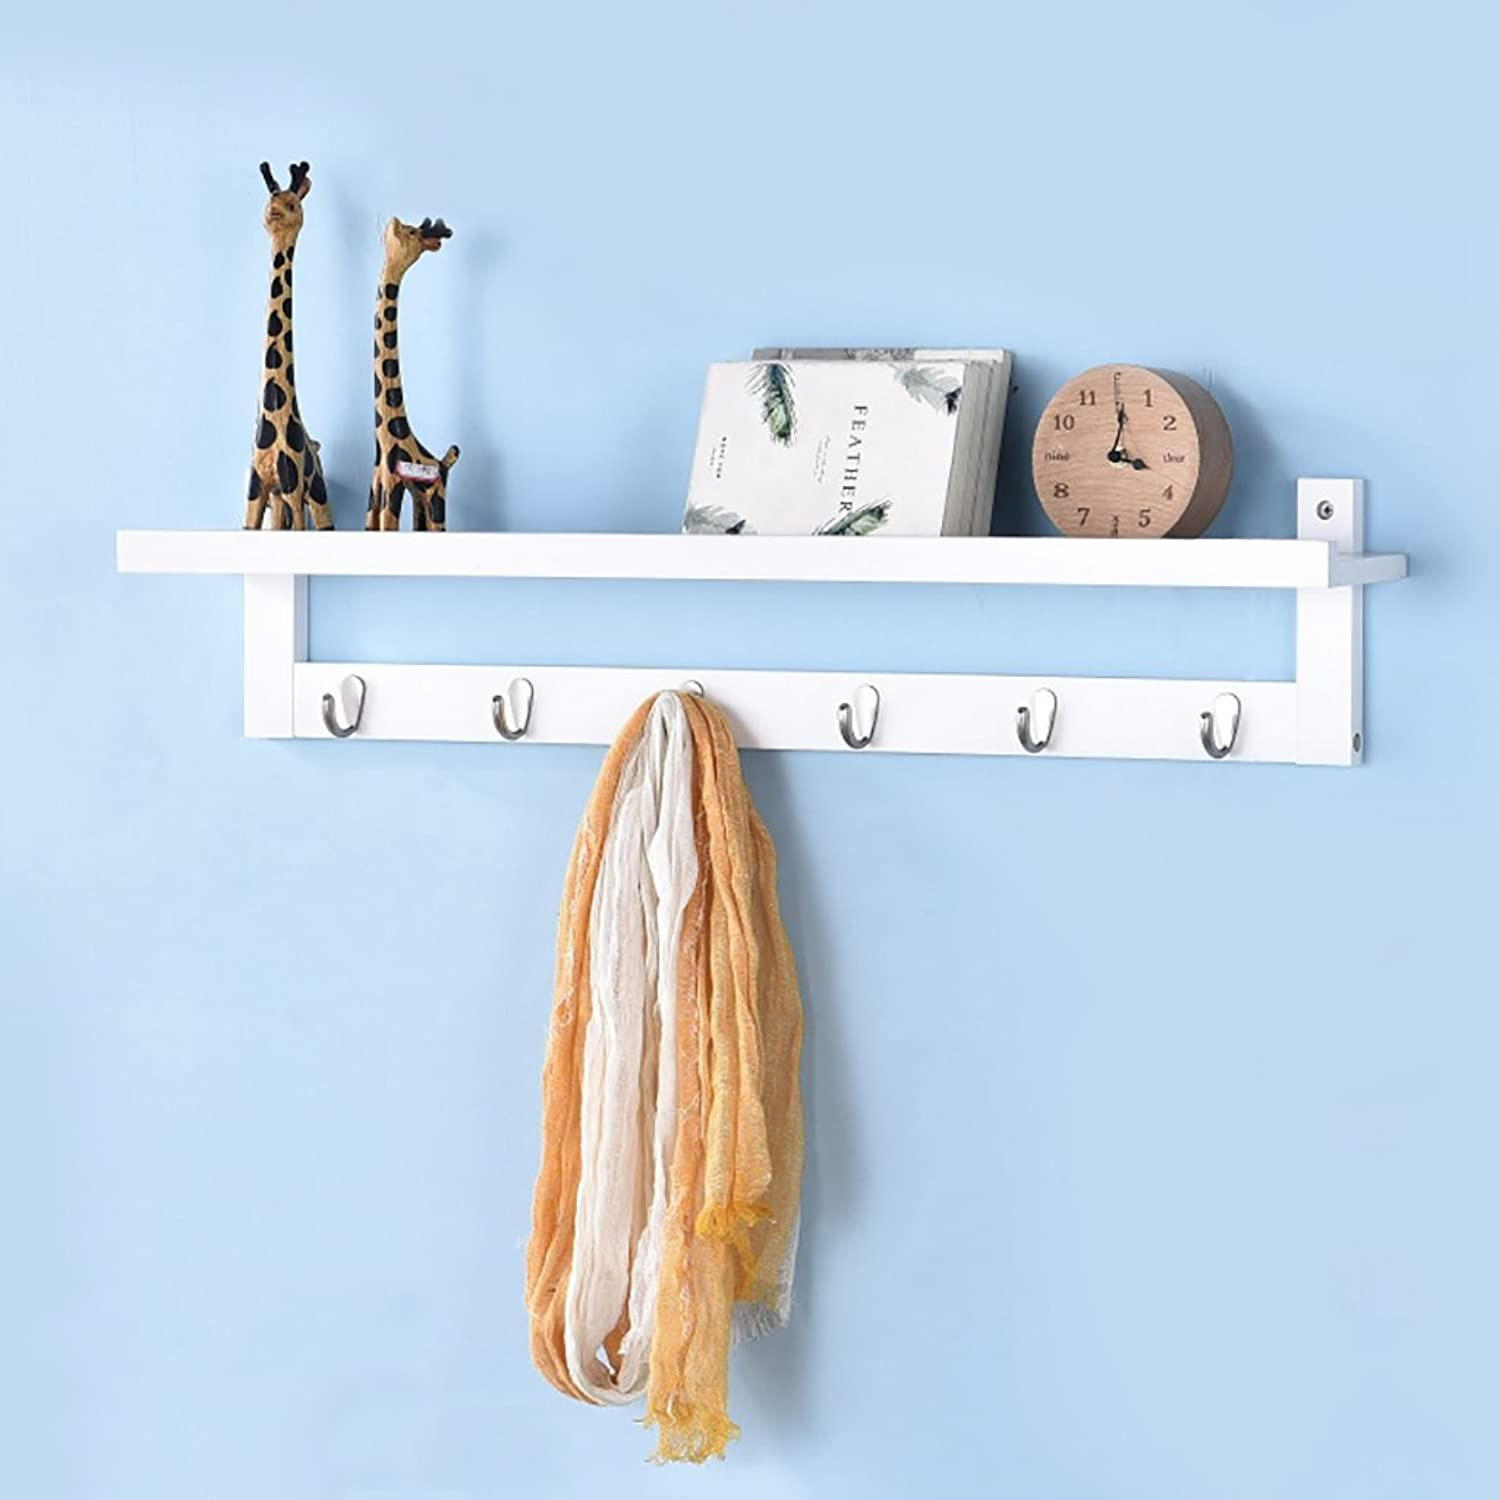 Wall Mounted Coat Rack, Wall-Hung Coat Hooks,Bedroom Living Room Entrance Creativity Simple Modern Solid Wood Wall-Mounted Coat Racks. (Size   87  12.5cm)